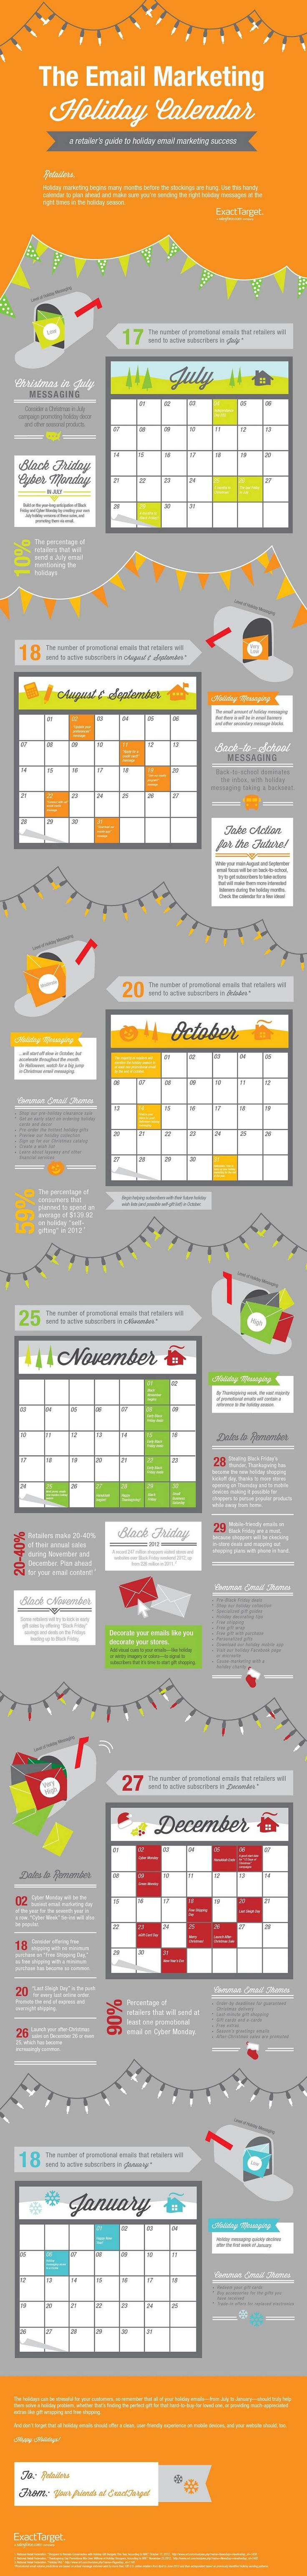 Marketing Calendar Ideas : Best images about mary kay on pinterest pink